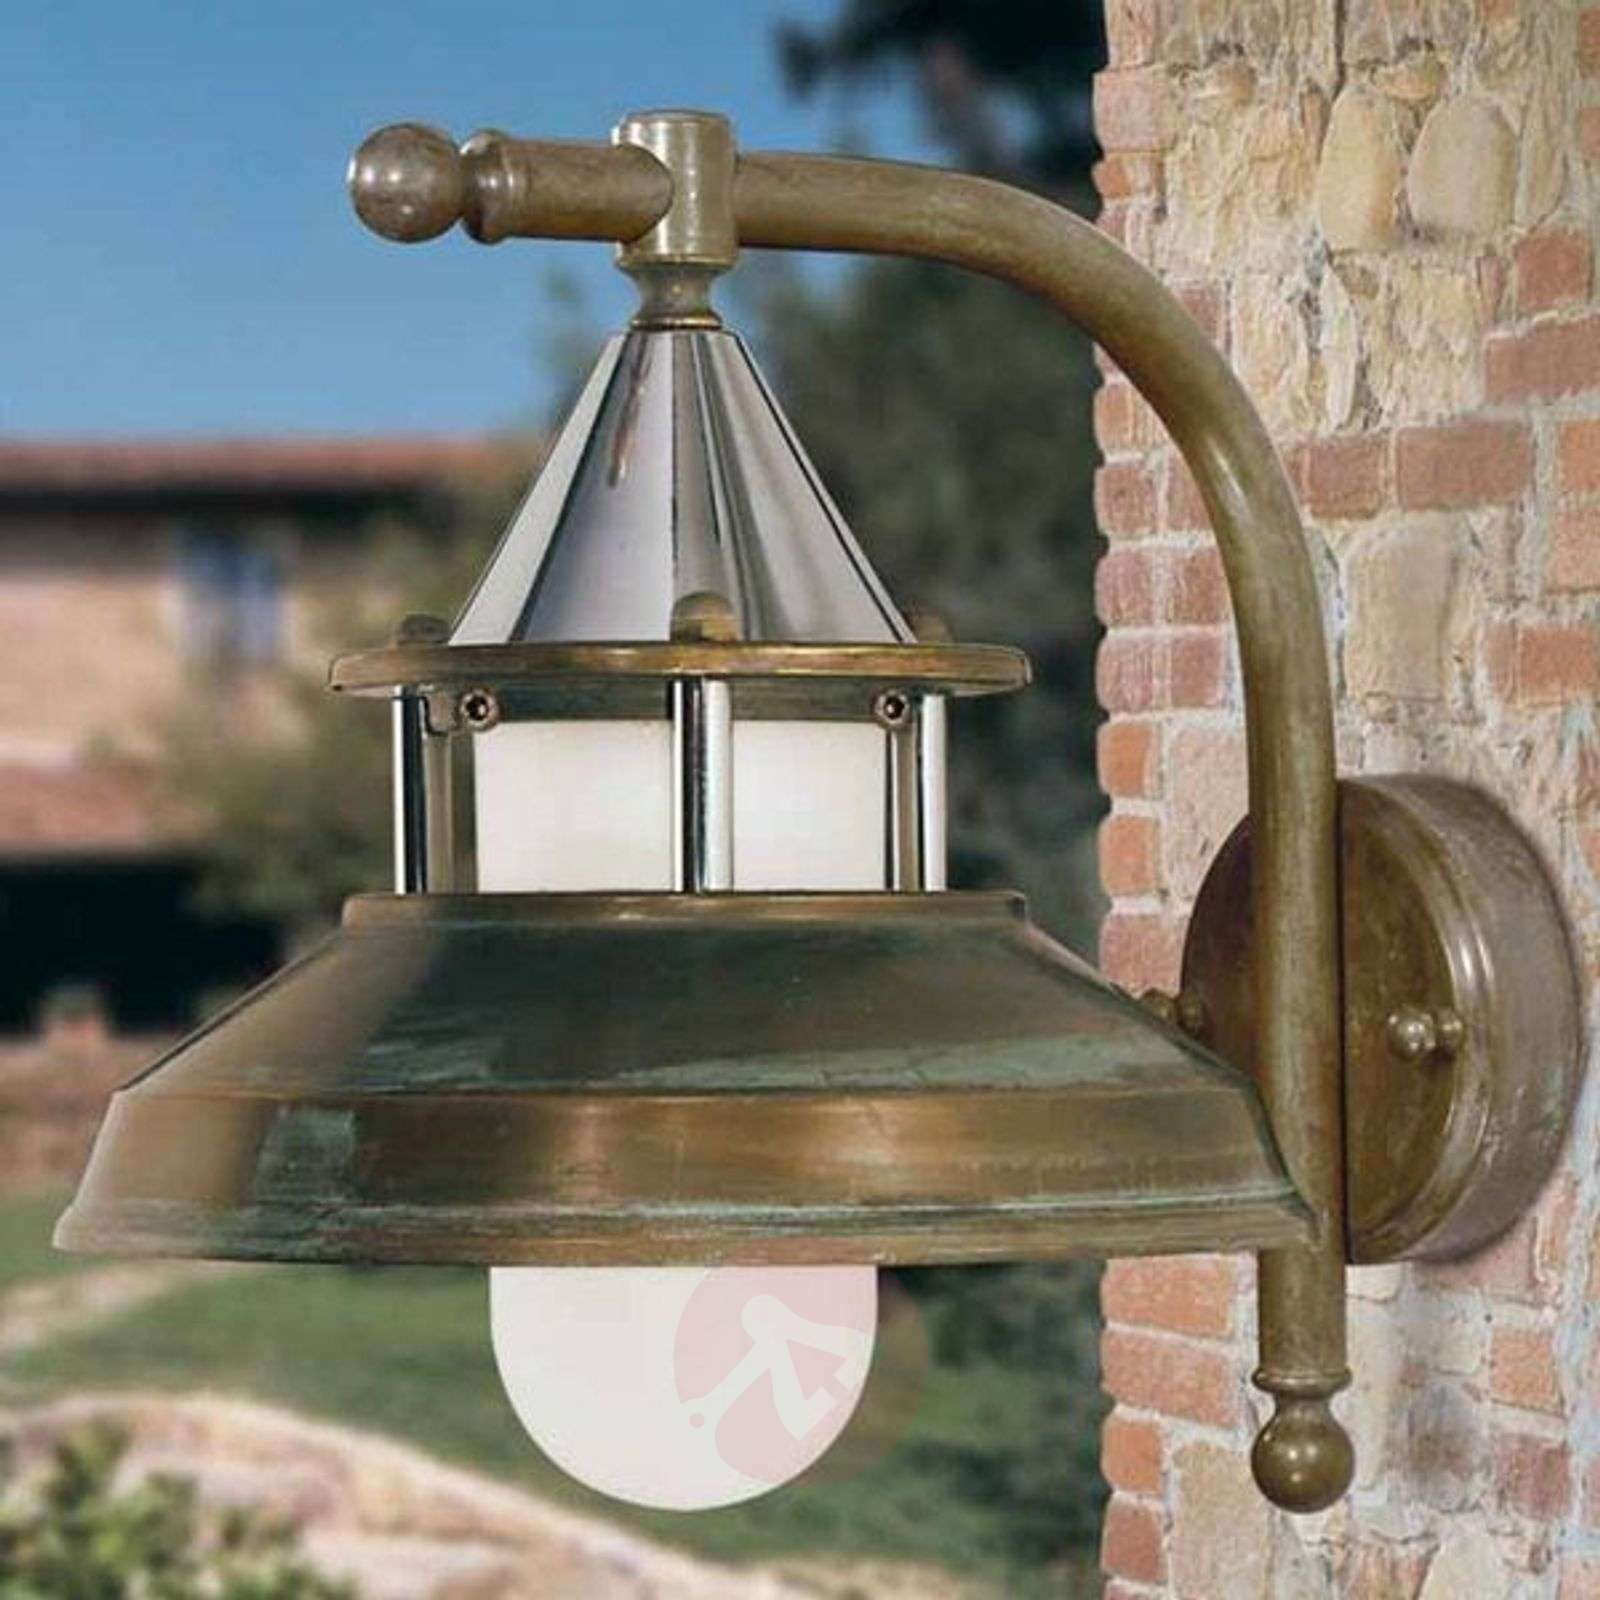 Rustic outdoor wall light Antique-6515085-01